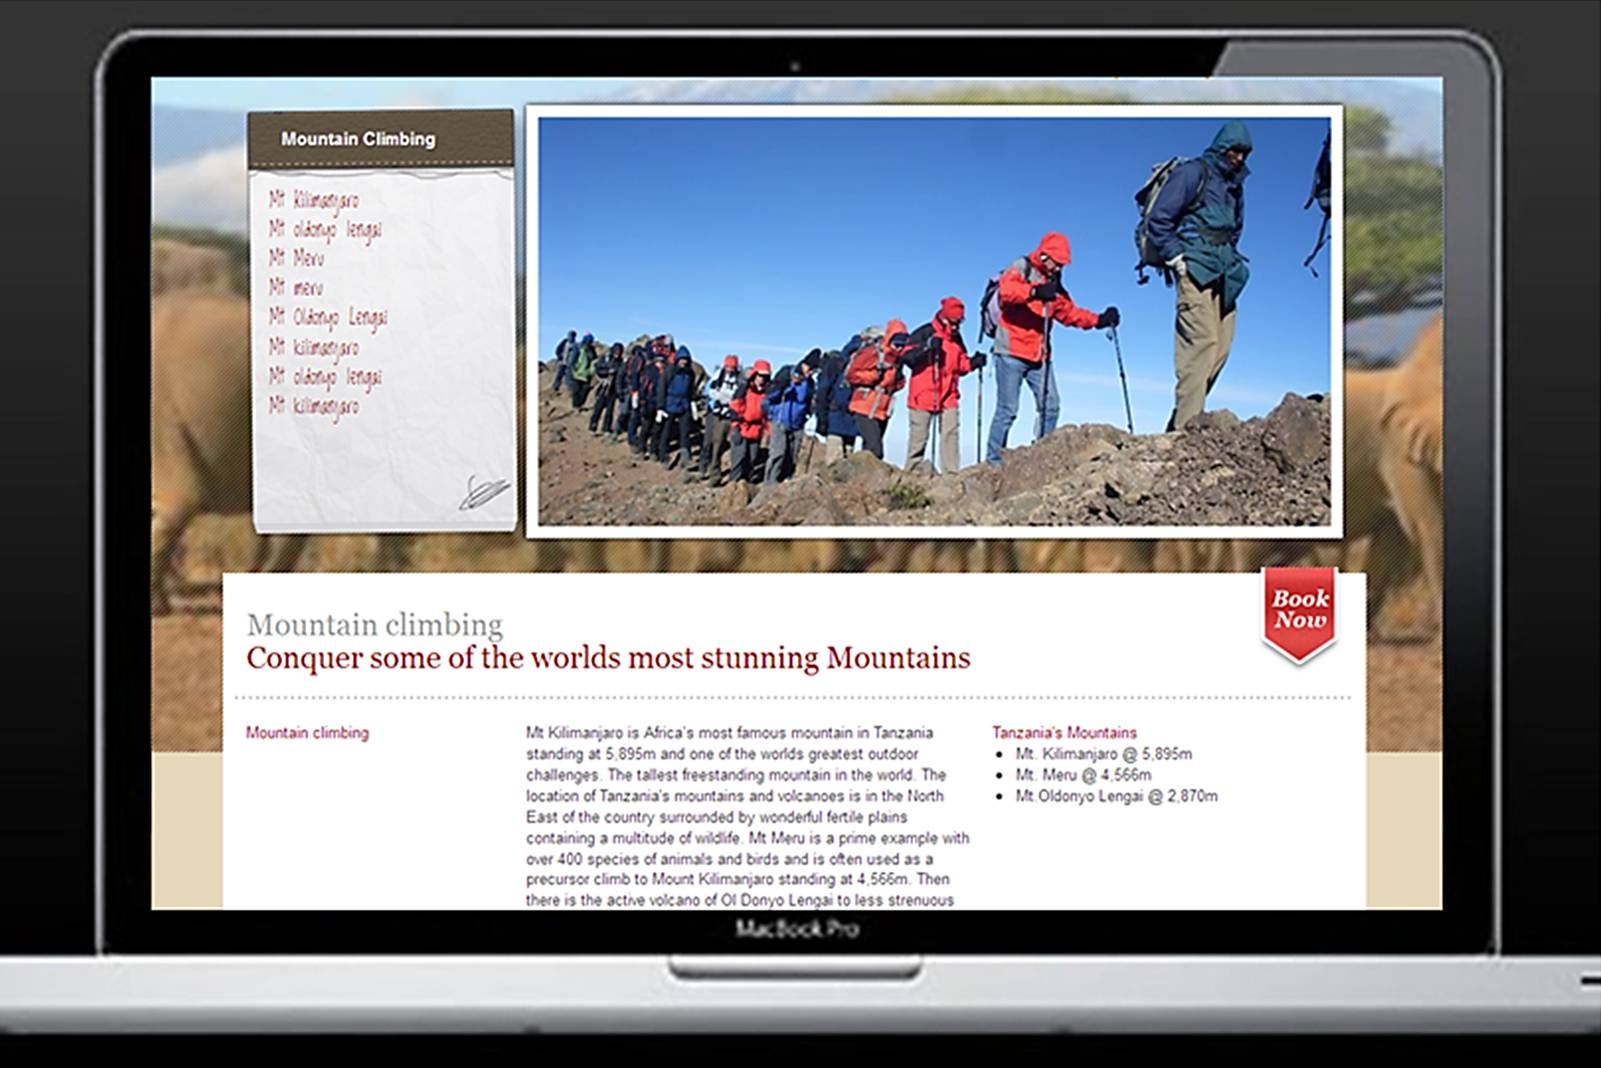 laptop screen showing people mountain climbing